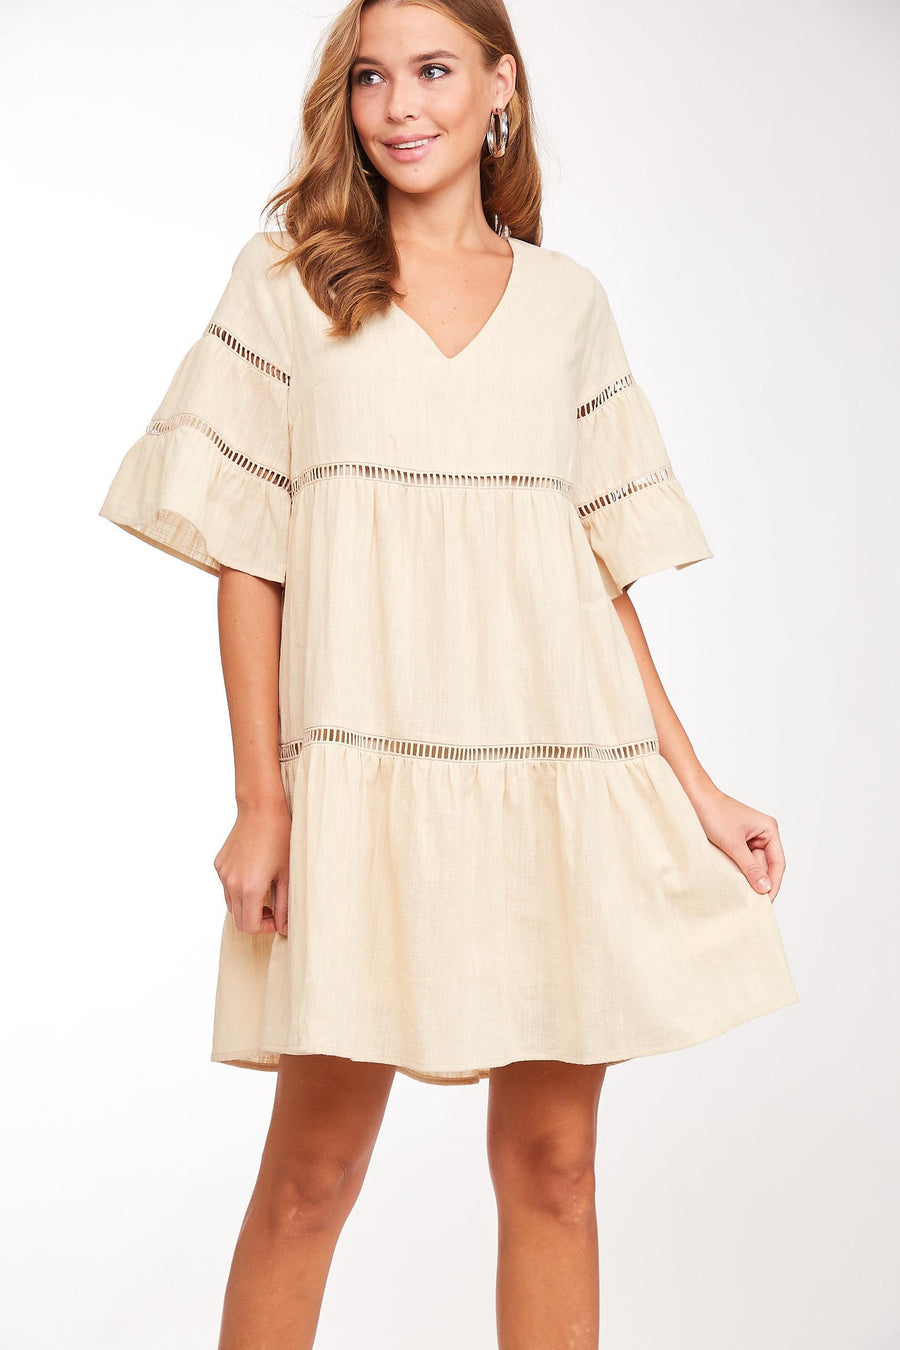 Sweetness Taken Ruffled Dress - Tan